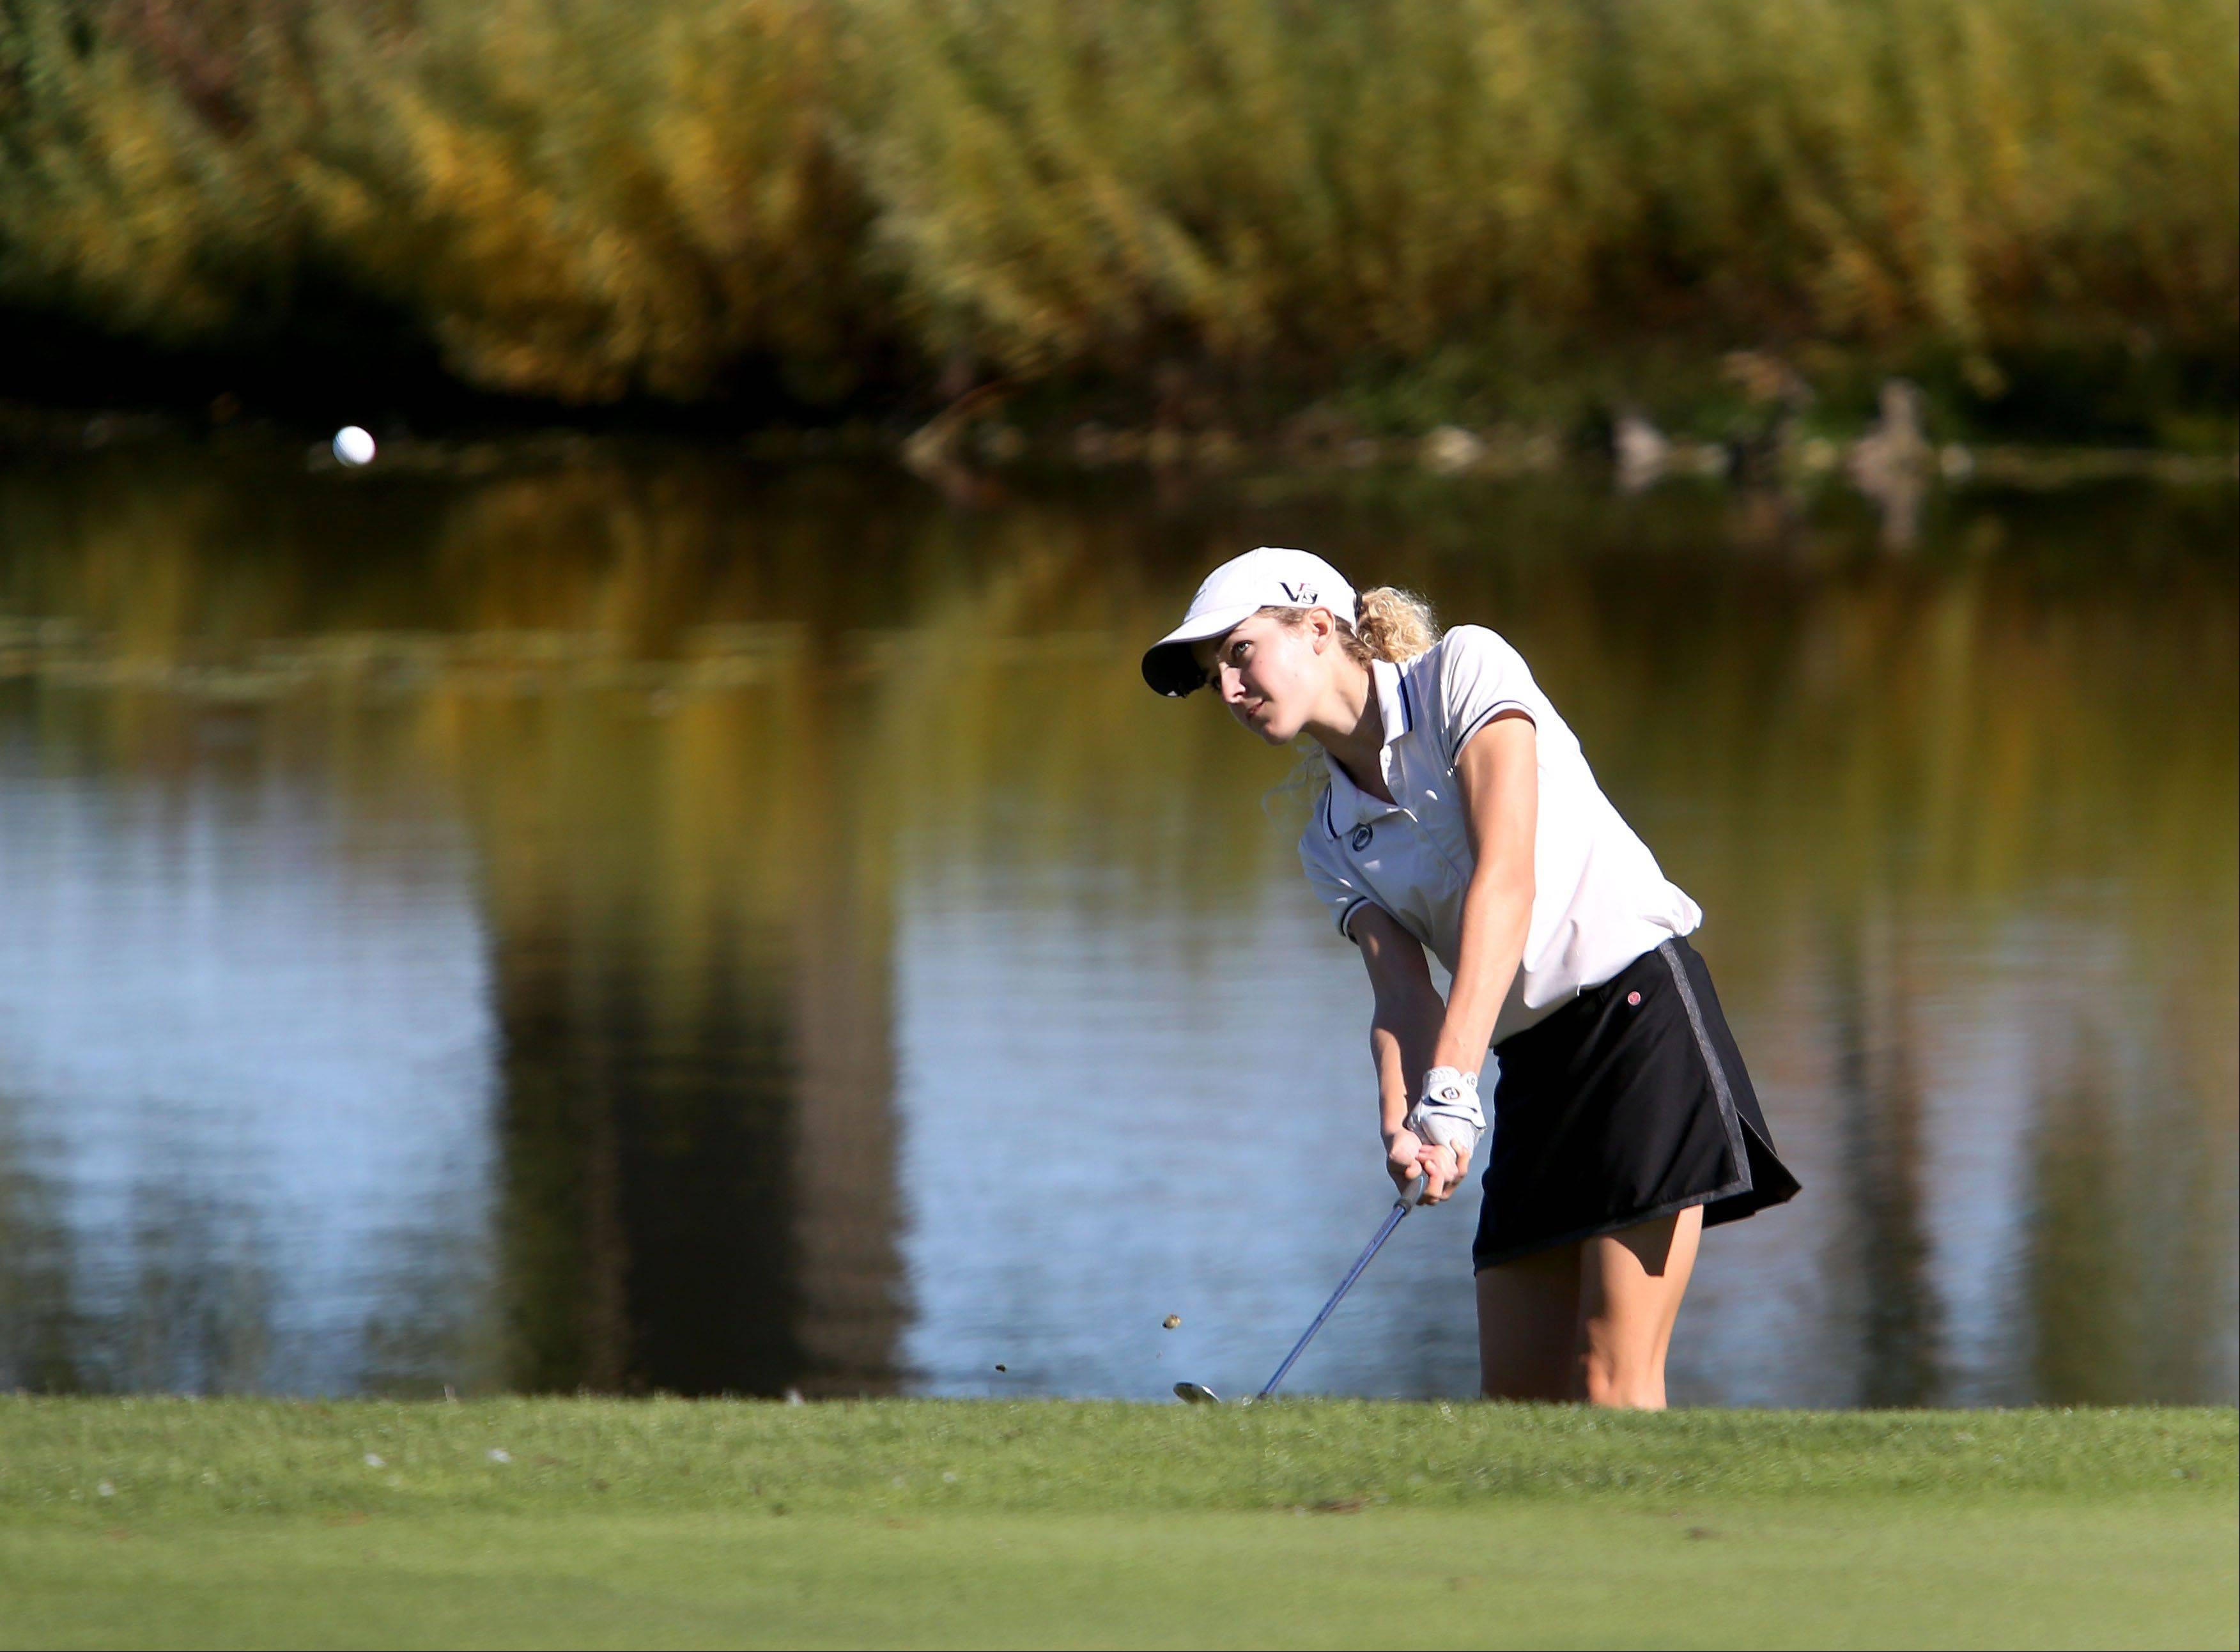 Emma Klimala of Glenbard West watches her chip shot onto the third green during Class AA Glenbard East regional girls golf at Glendale Lakes Golf Course in Glendale Heights on Wednesday.